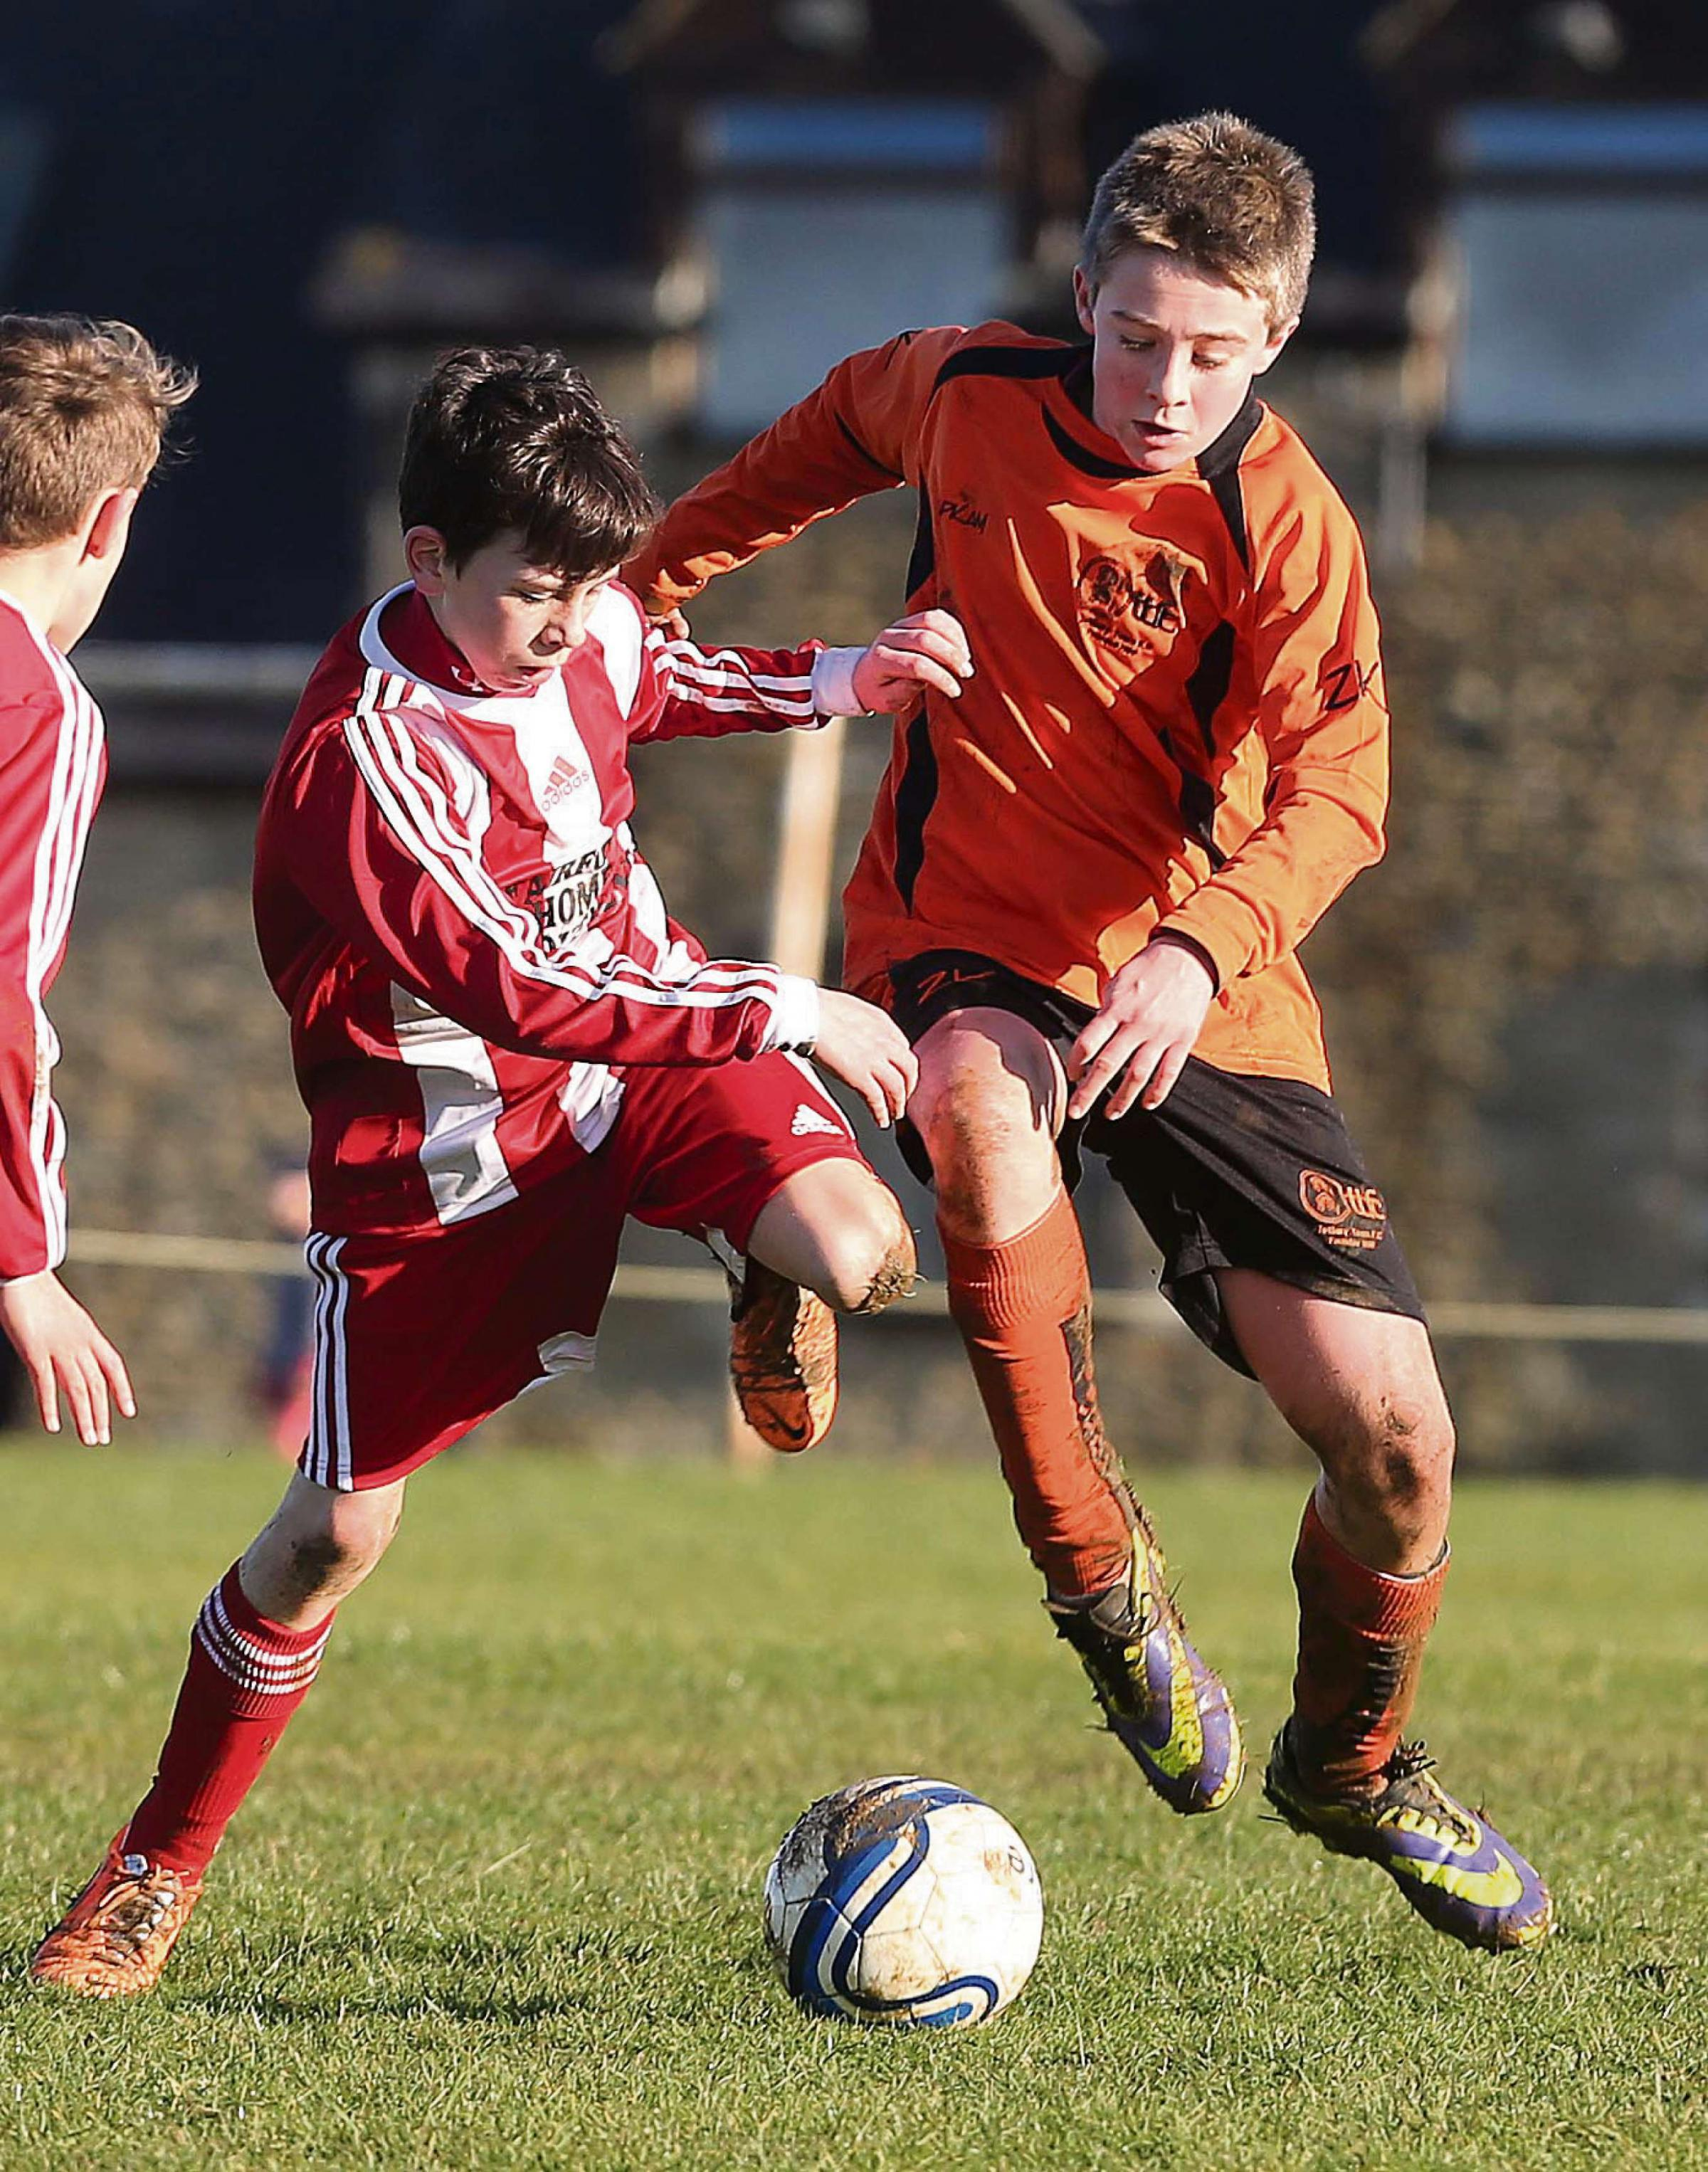 YOUTH FOOTBALL: South Cerney gain impressive win at Wroughton